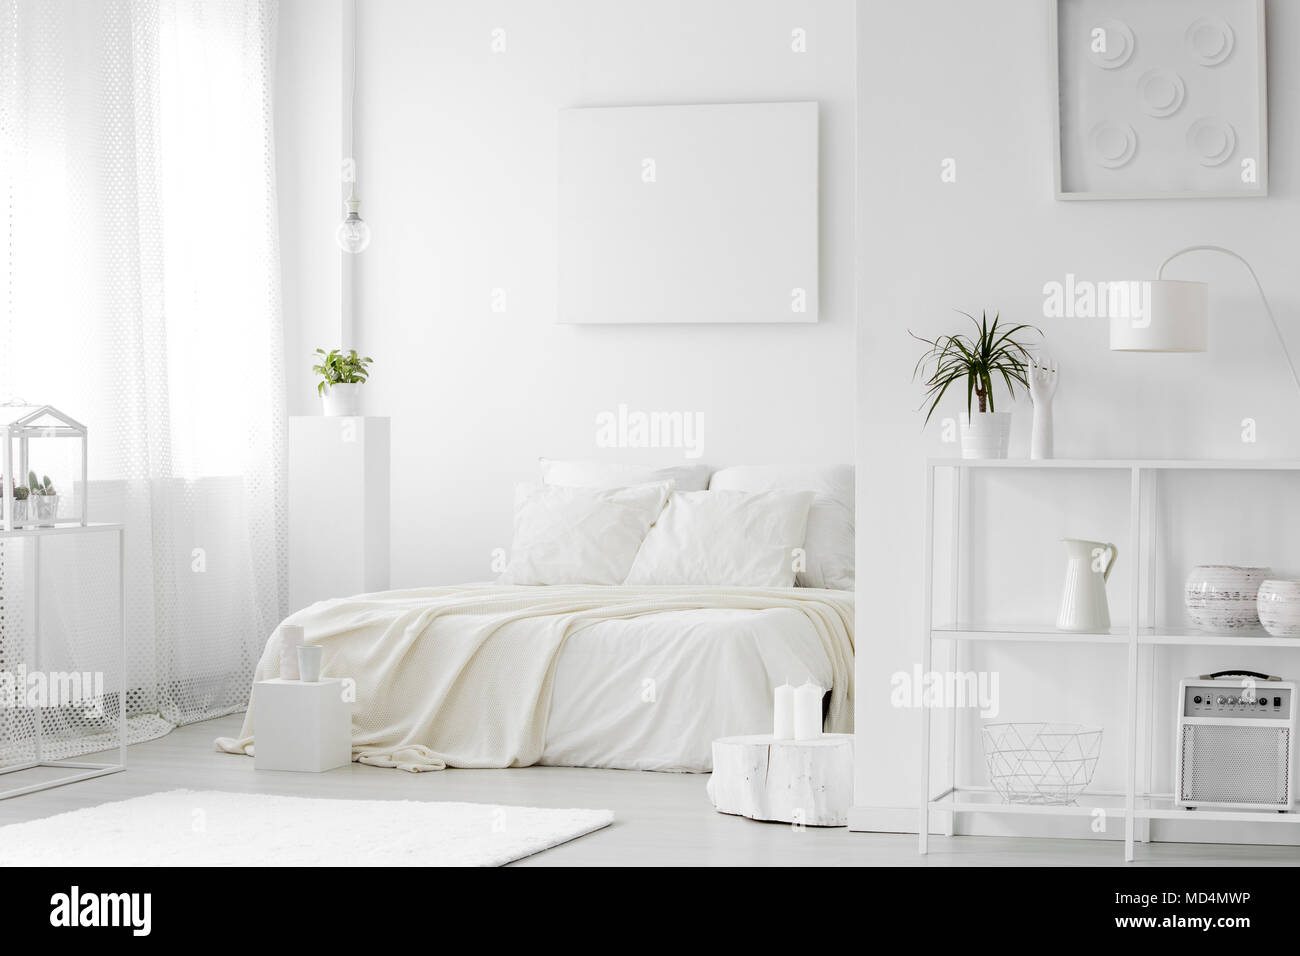 Cozy white bedroom interior with a king size bed, shelves ...